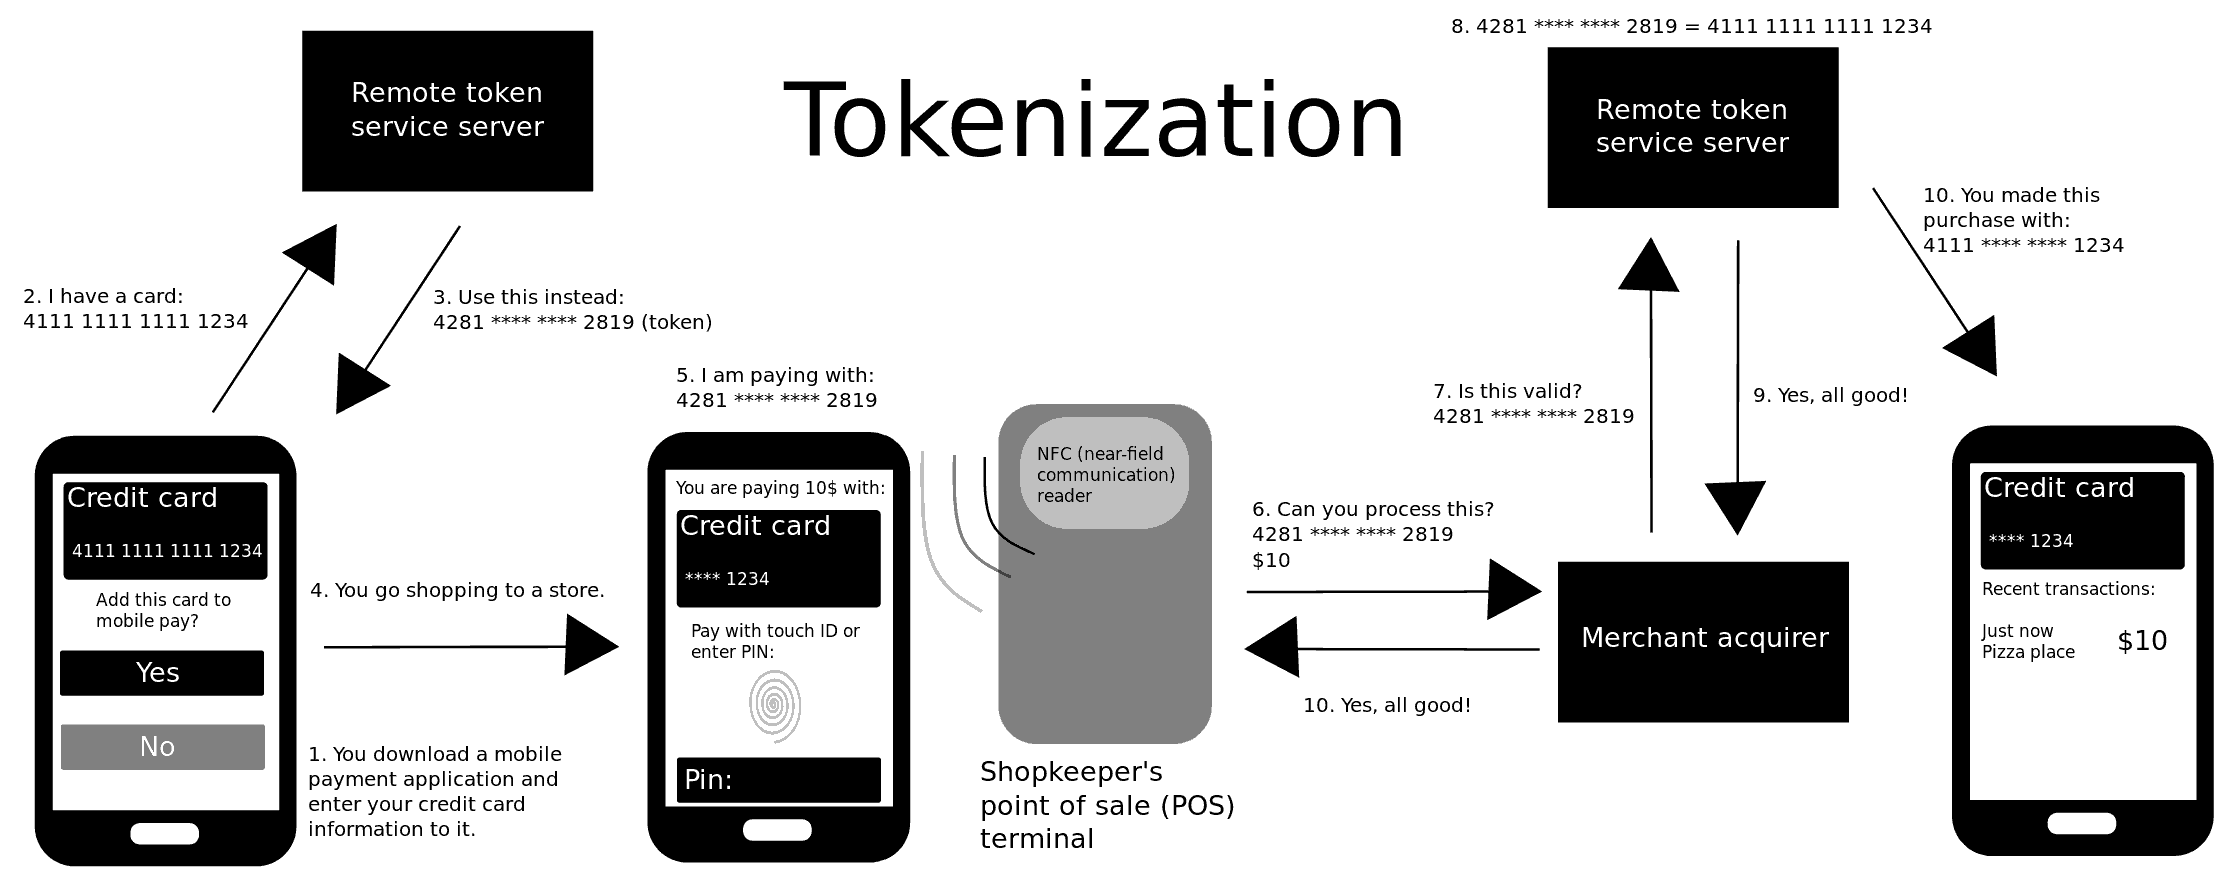 Tokenization, a Capability behind secured Mobile payment